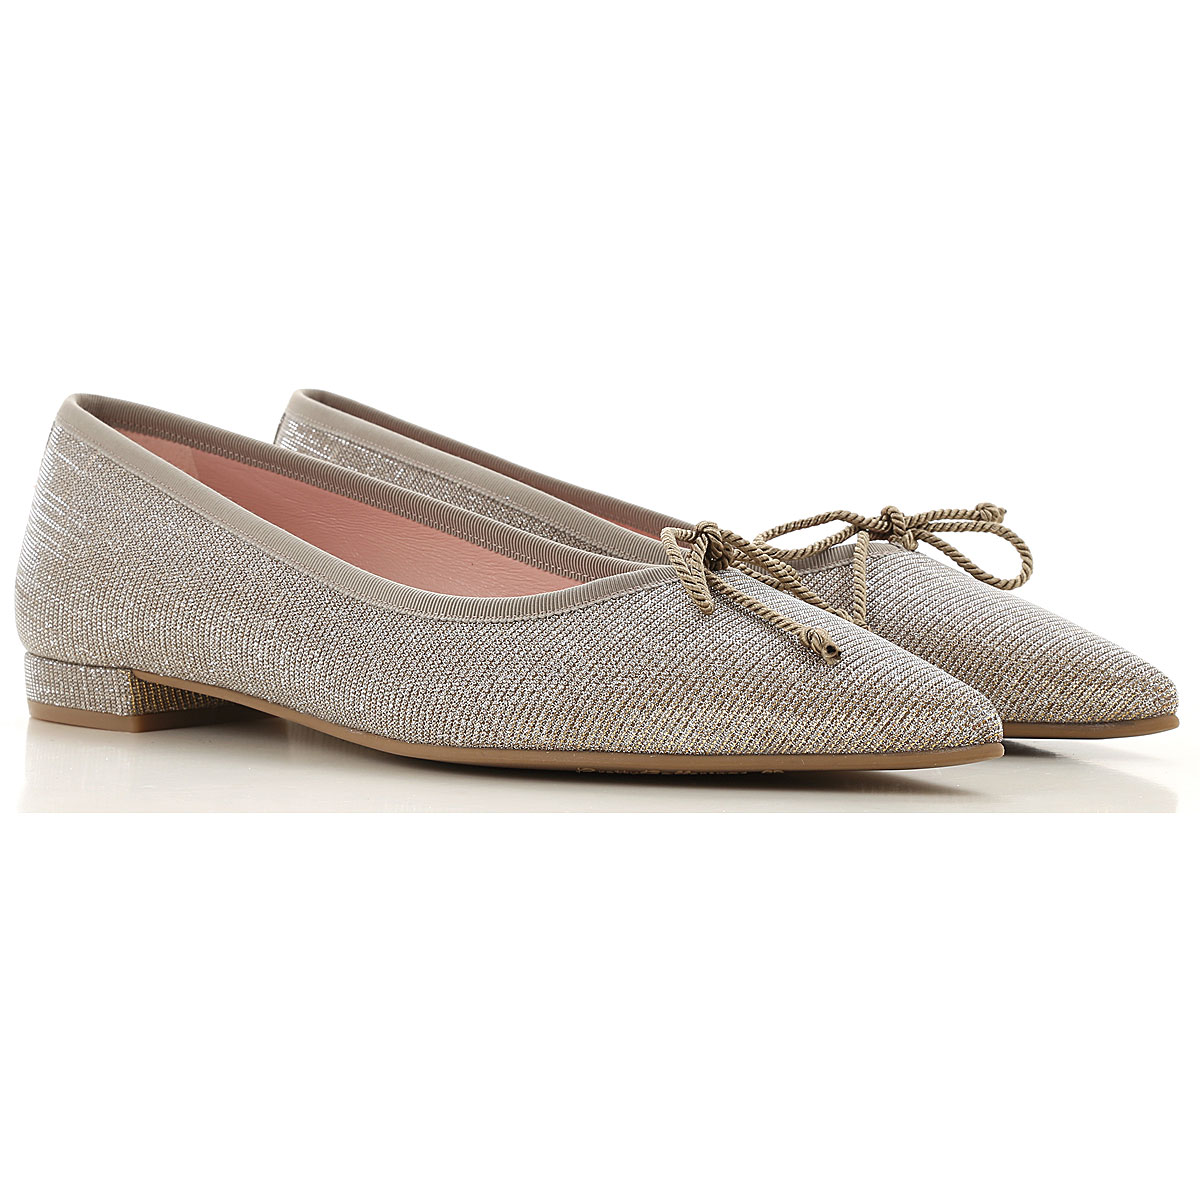 Pretty Ballerinas Ballet Flats Ballerina Shoes for Women On Sale in Outlet, Beige, Leather, 2019, 6 8